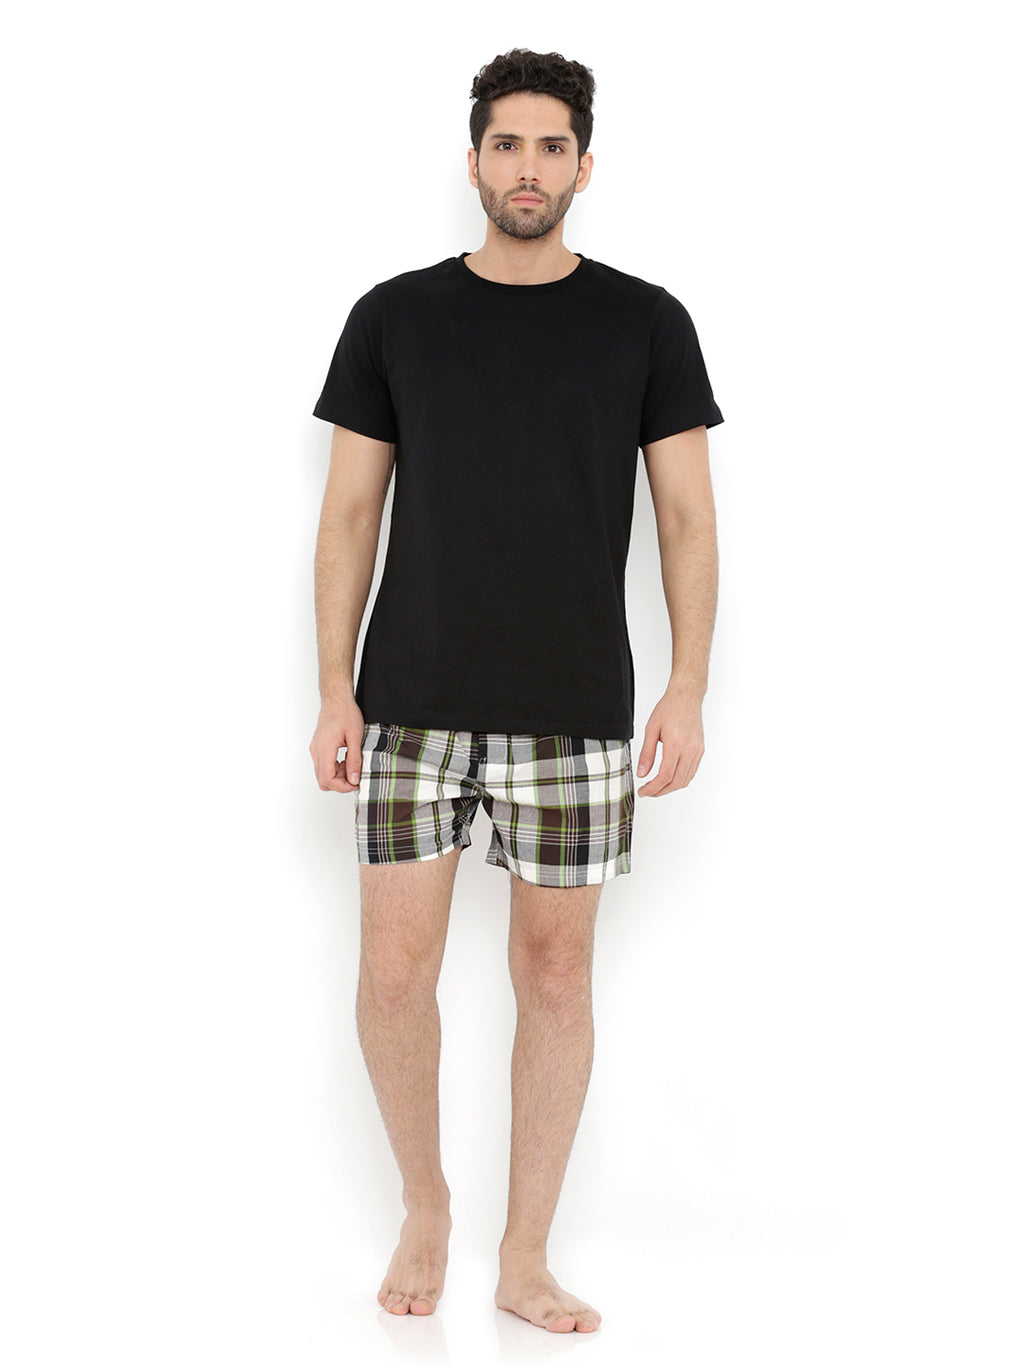 Tee & Boxer Set - Black Tee with Green Black Check Boxers